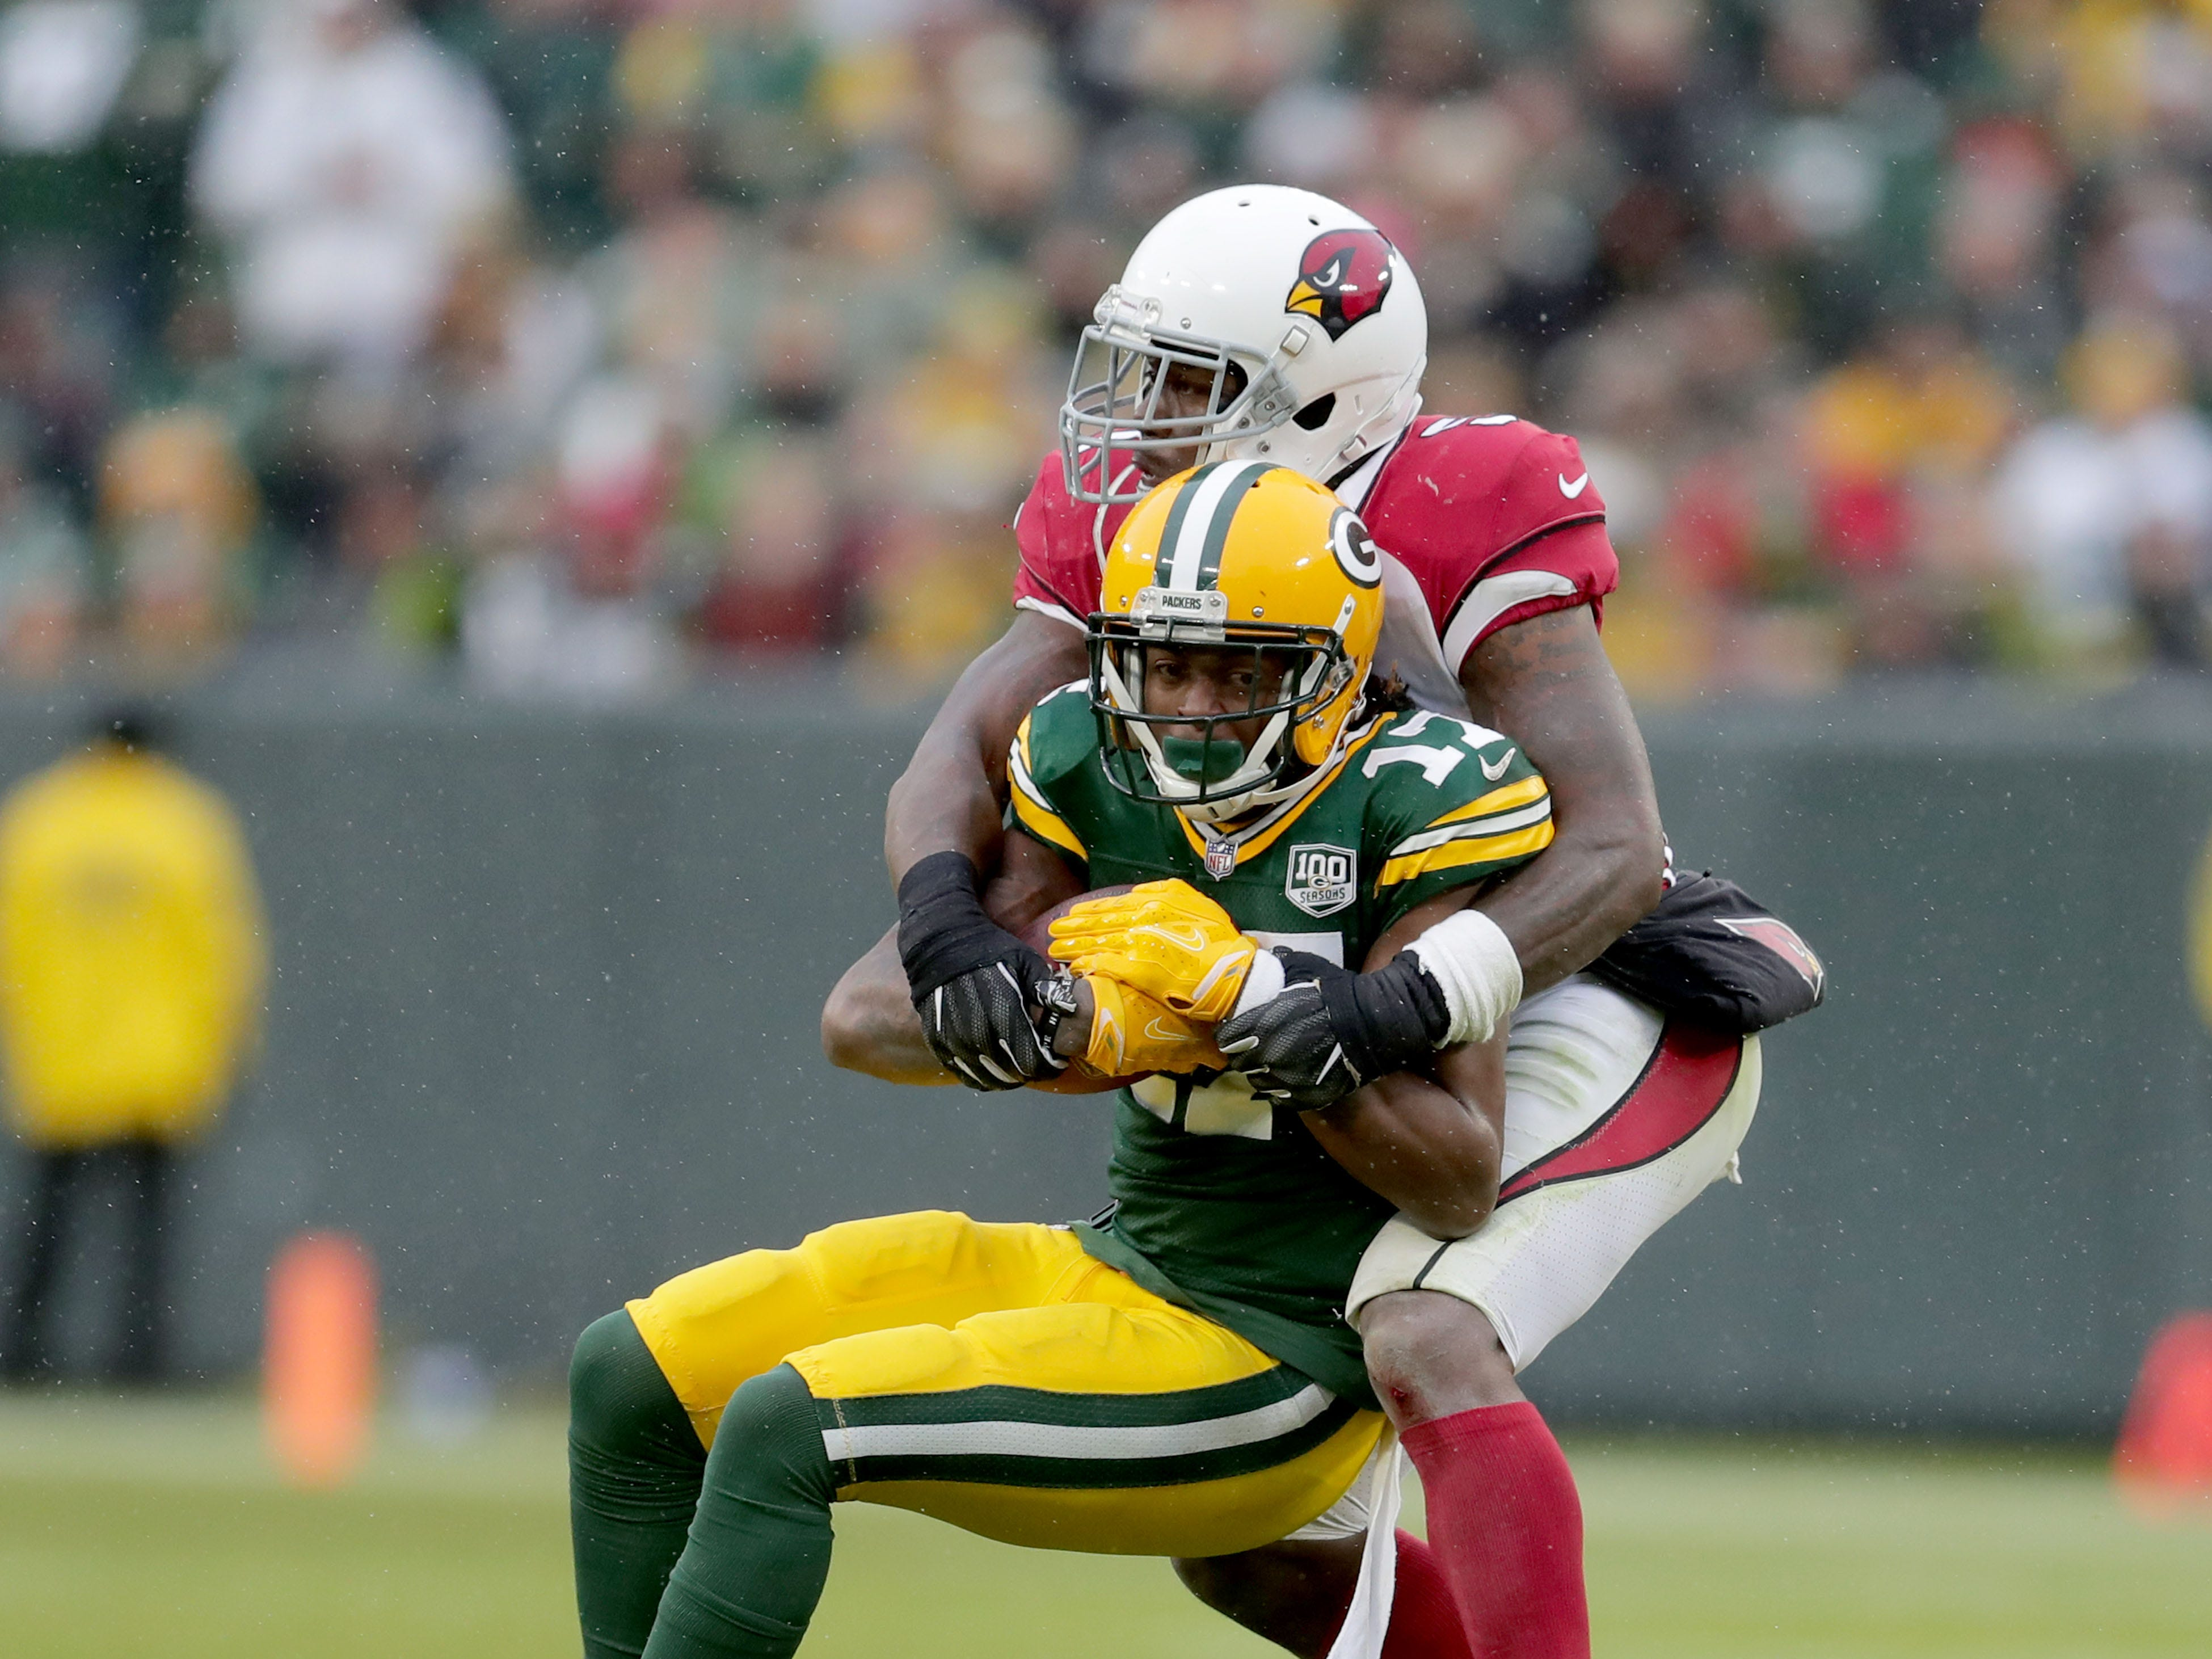 Green Bay Packers wide receiver Davante Adams (17) is tackled by Arizona Cardinals linebacker Gerald Hodges (51) during the 4th quarter of Green Bay Packers game 20-17 loss against the Arizona Cardinals on Sunday, December 2, 2018 at Lambeau Field in Green Bay, Wis. Mike De Sisti / USA TODAY NETWORK-Wis